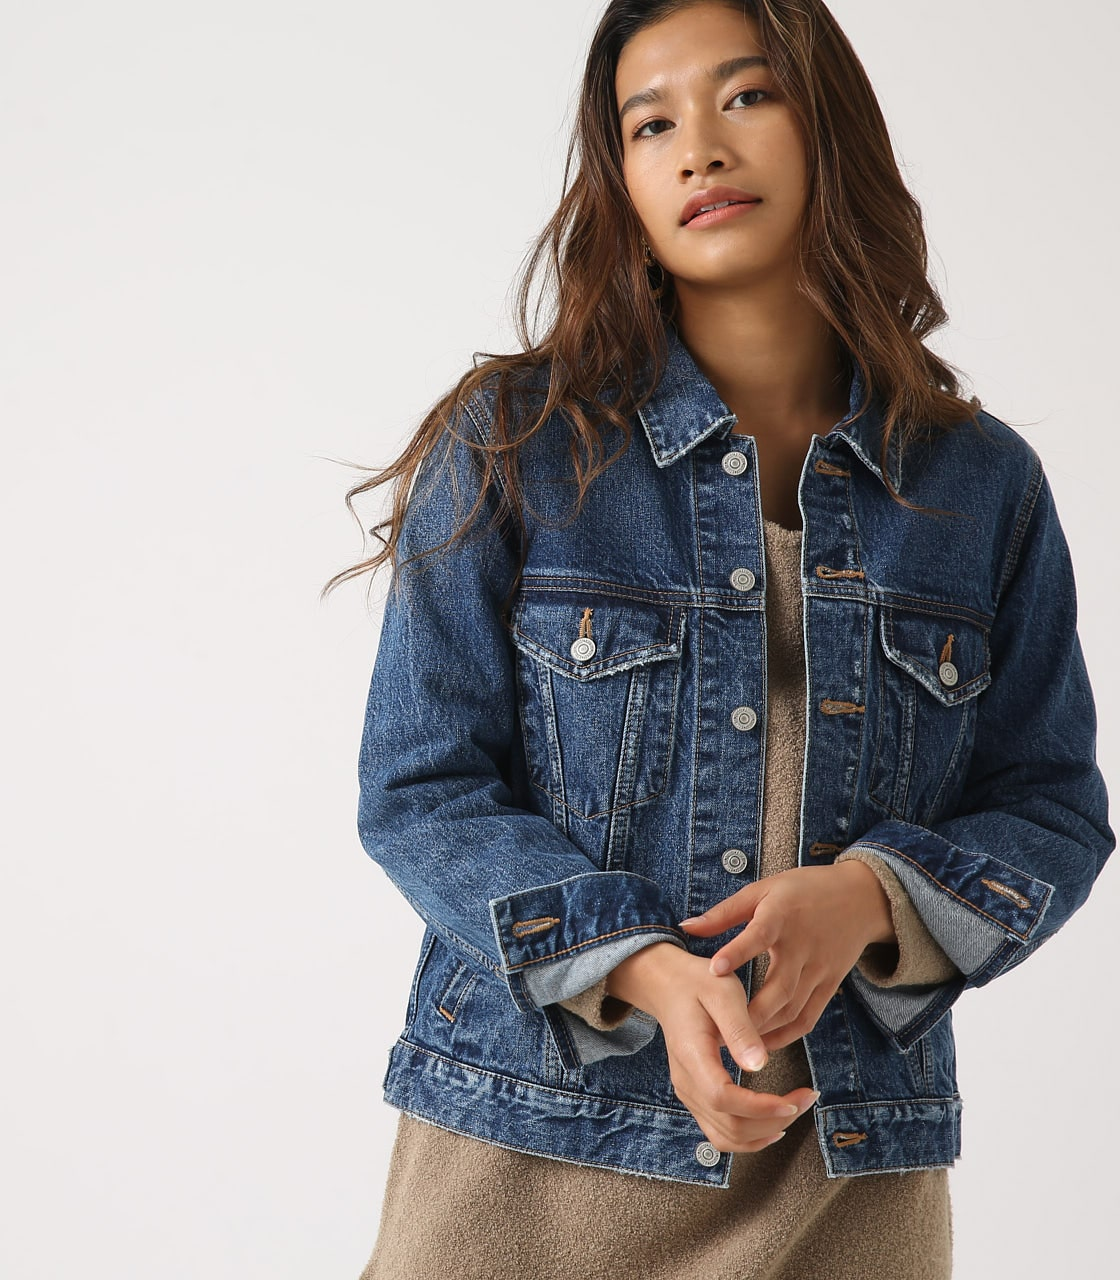 【AZUL BY MOUSSY】DENIM JACKET 詳細画像 BLU 1